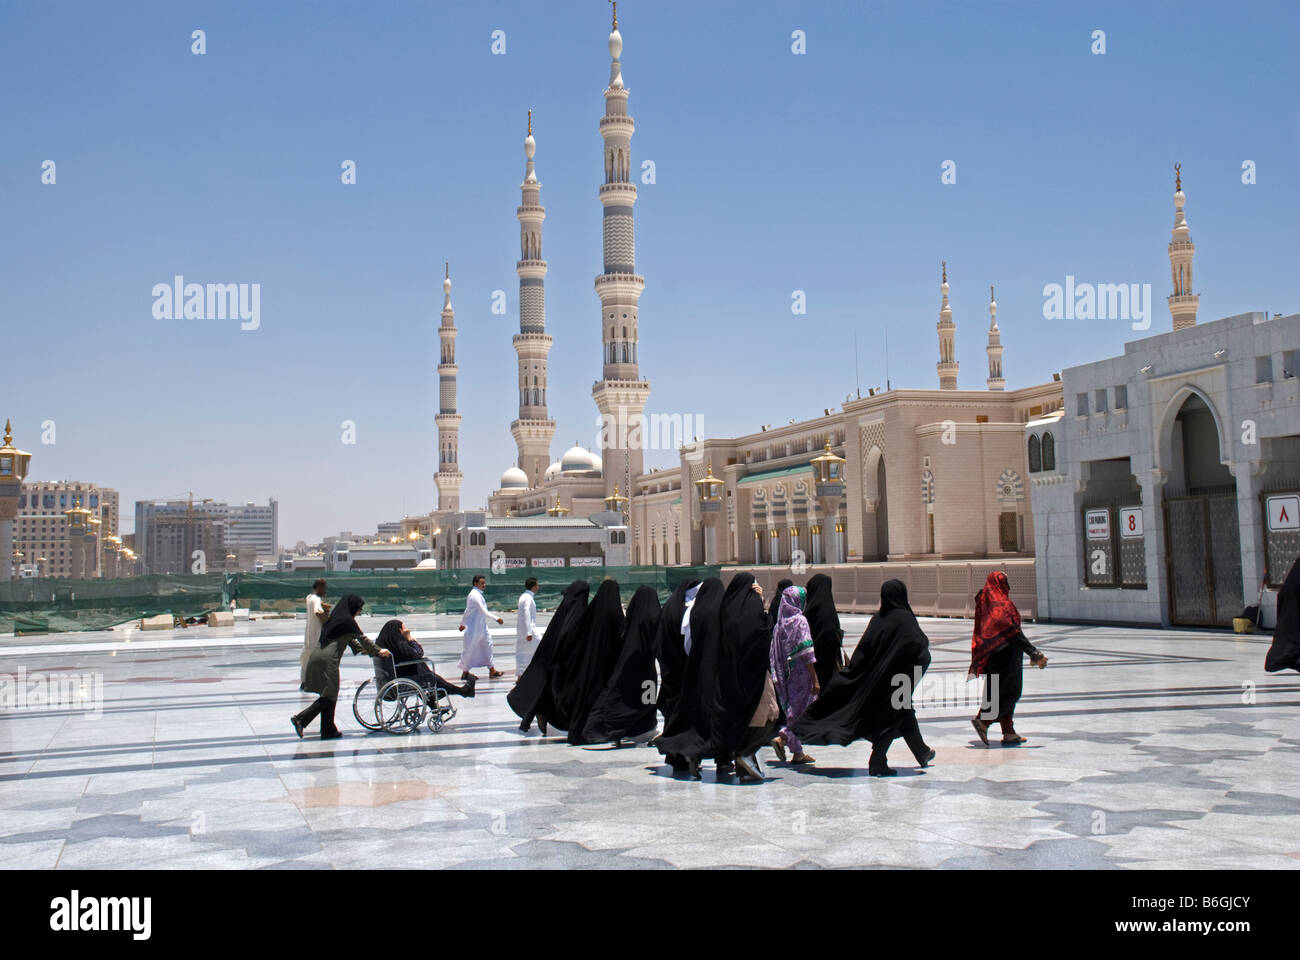 Women on their way for Dhur prayer The Mosque of the Prophet Masjid al Nabawi Madinah Saudi Arabia - Stock Image